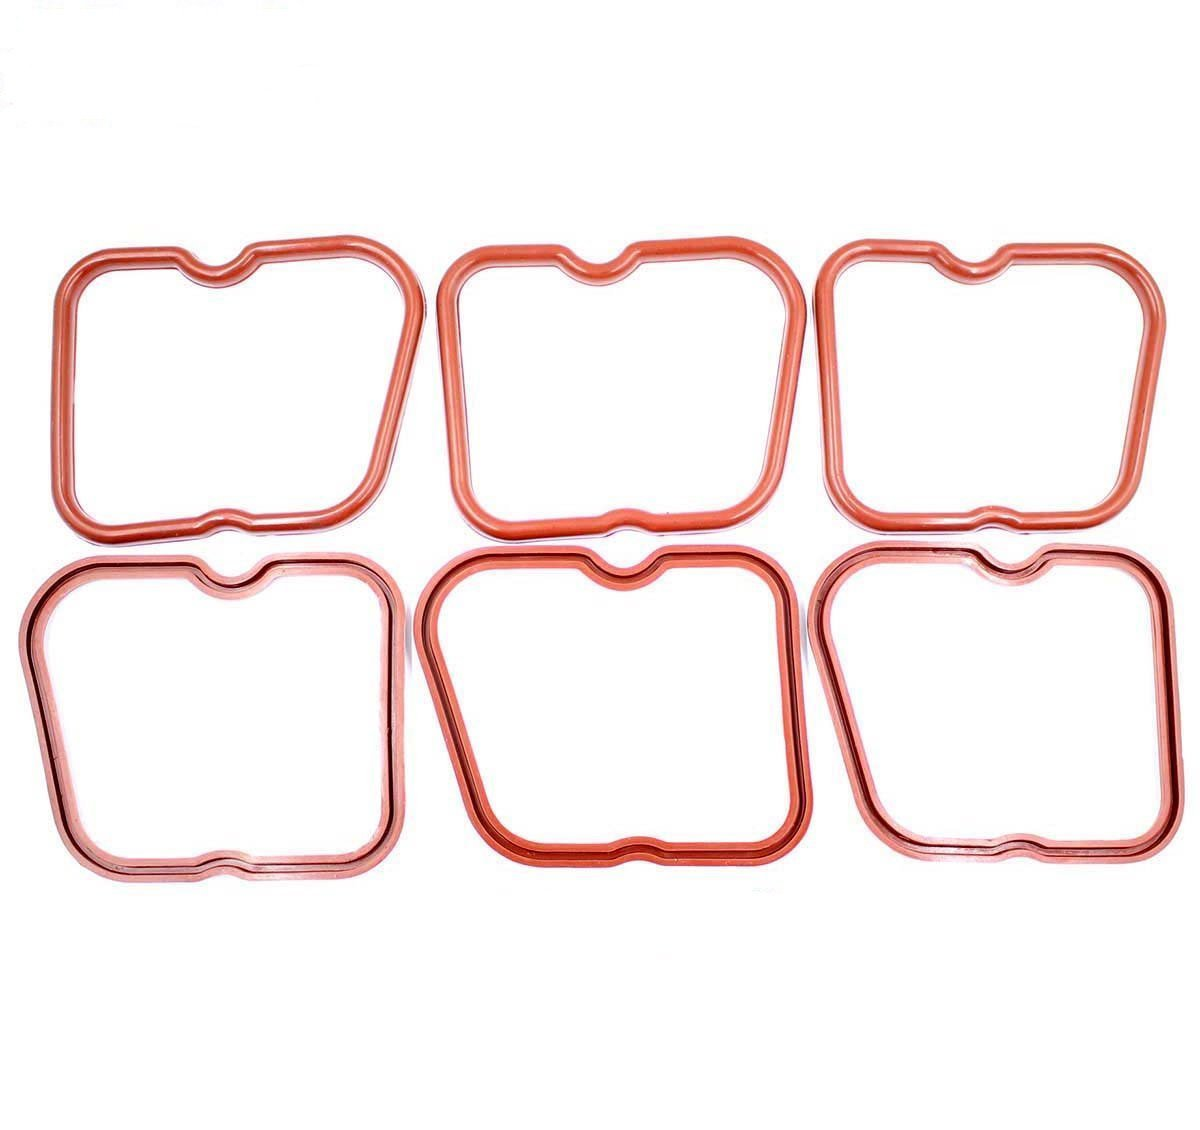 Dodge Cummins 1989-1998 4bt & 6bt Valve Cover Gasket Set (Set of 6)